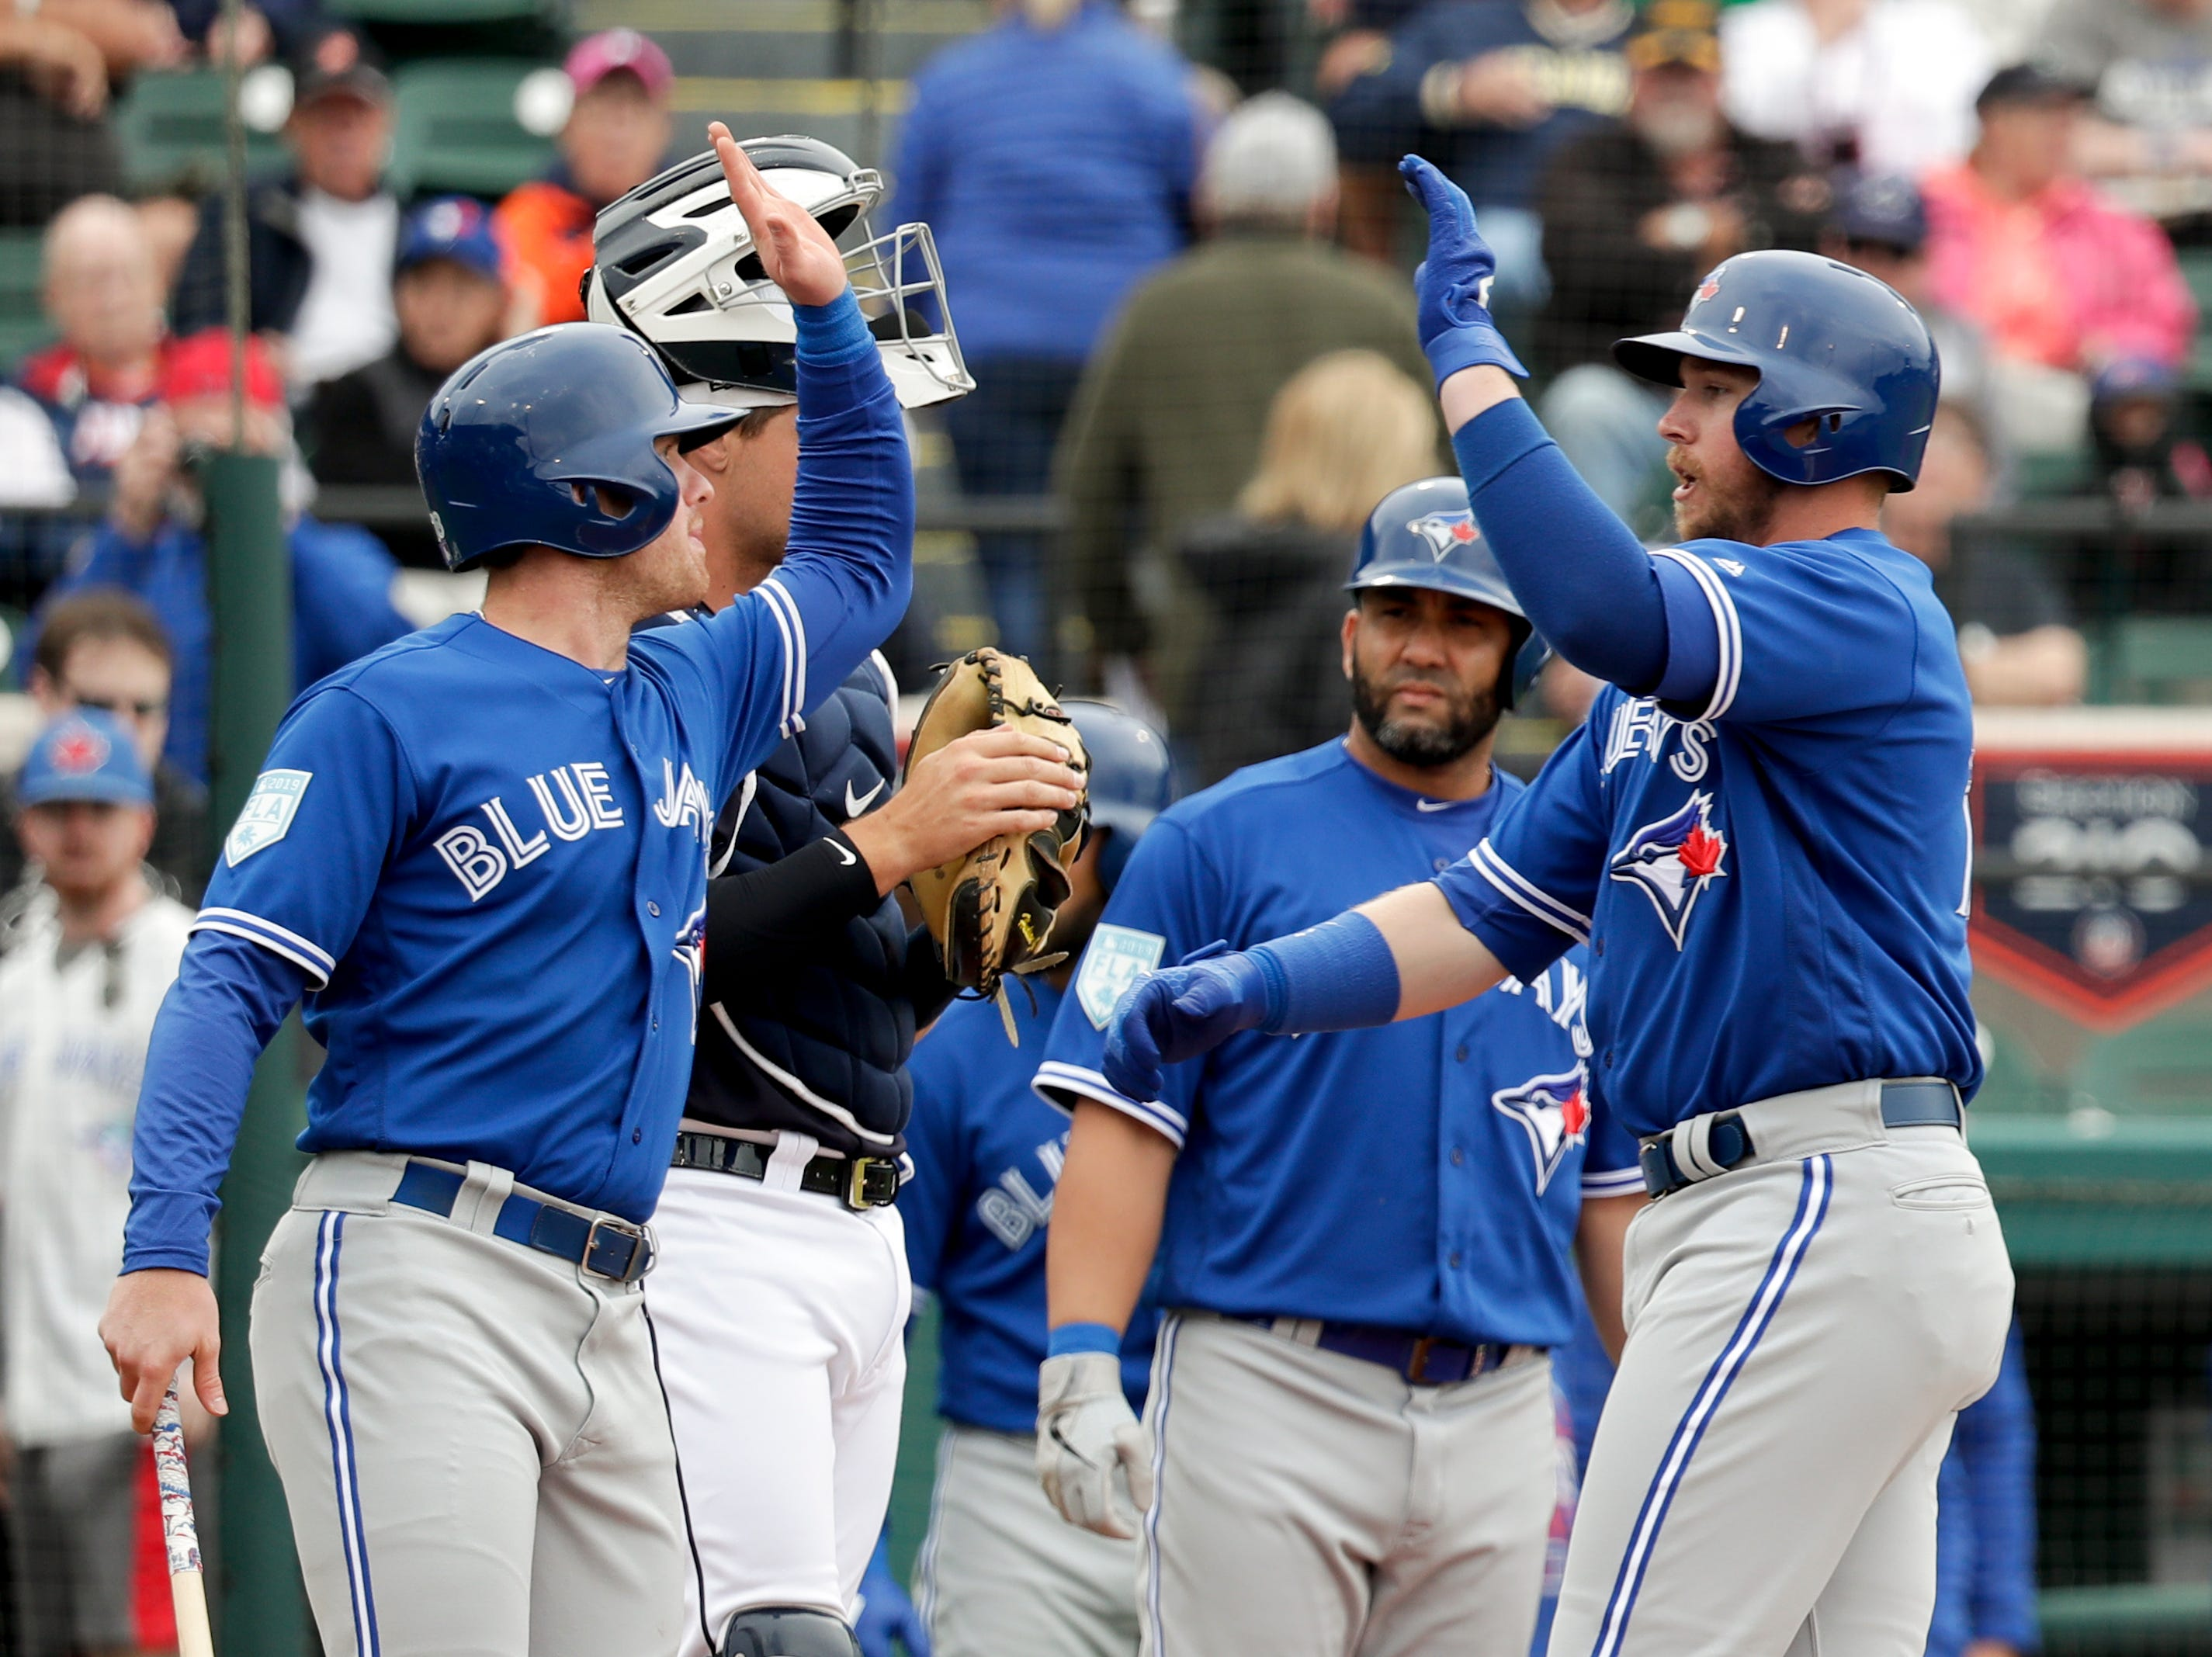 Toronto Blue Jays' Justin Smoak, right, high-fives teammate Billy McKinney after hitting a 3-run home in the first inning against the Detroit Tigers of a spring training baseball game, Tuesday, March 5, 2019, in Lakeland, Fla.